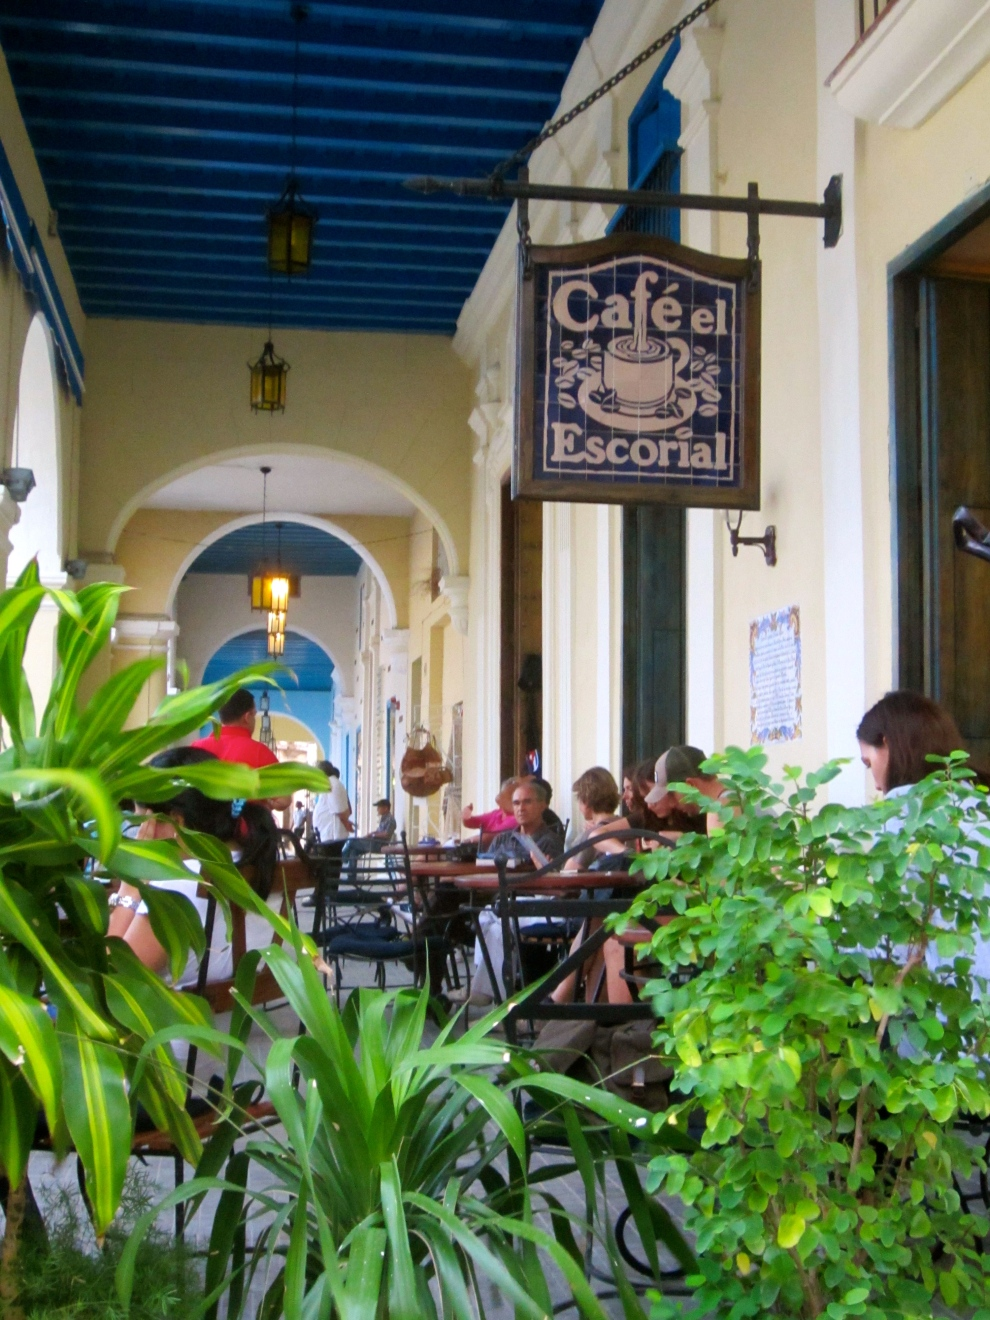 Cafe in old town Havana